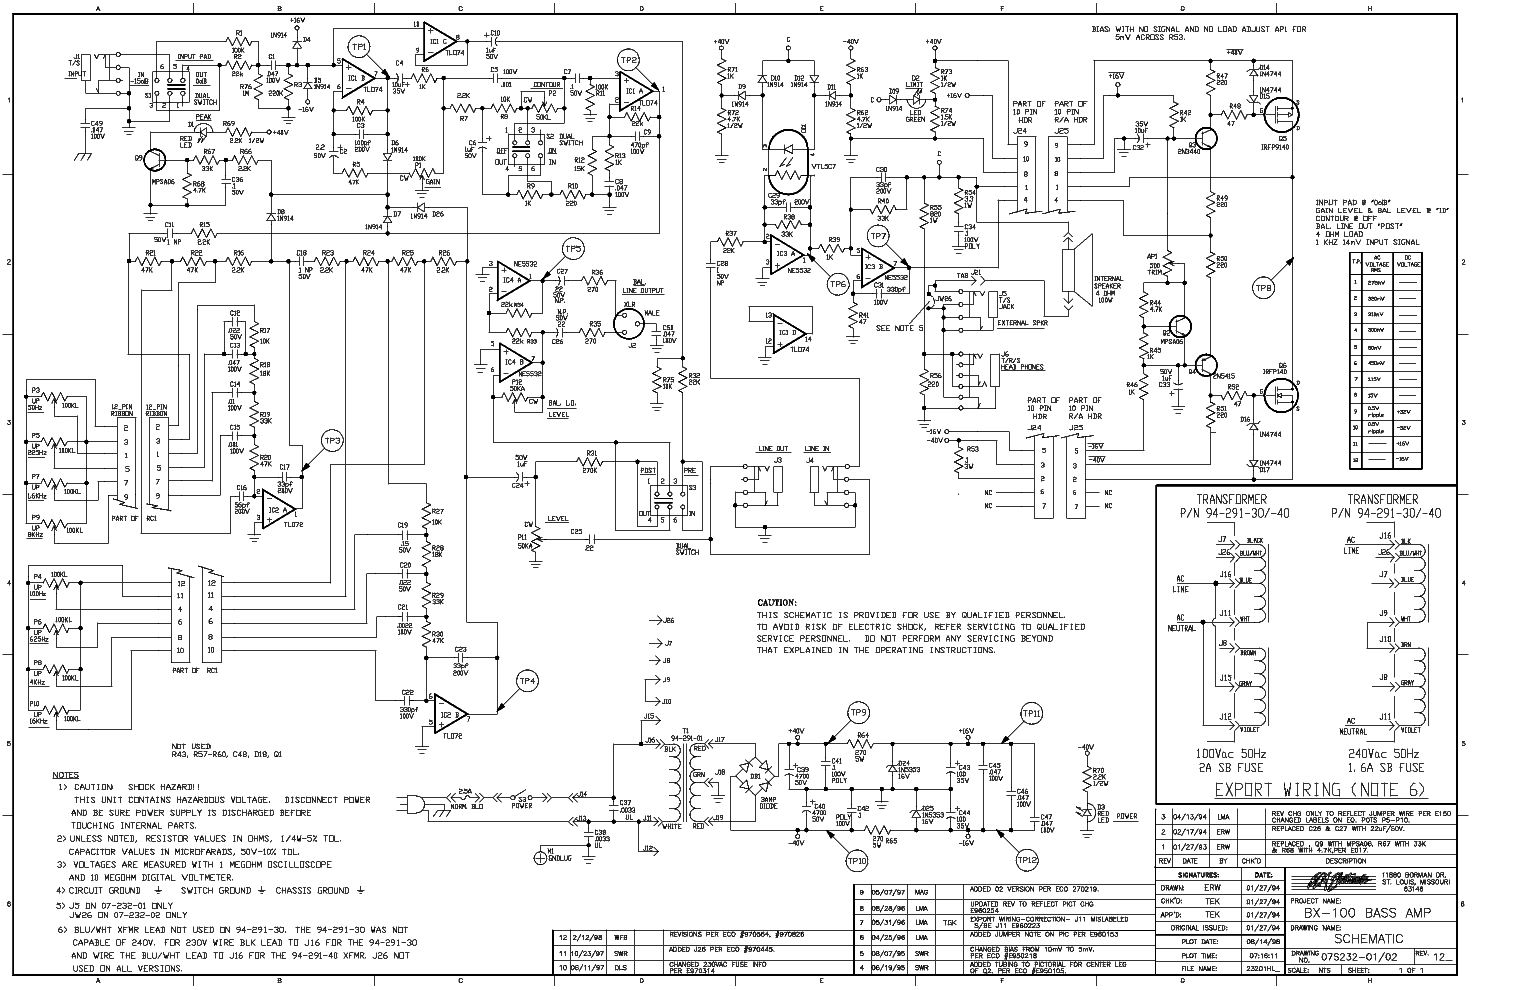 Crate Bass Guitar Wiring Schematics Diagrams Amp Diagram Rfx65 Best Site Harness Grounding To Pots P